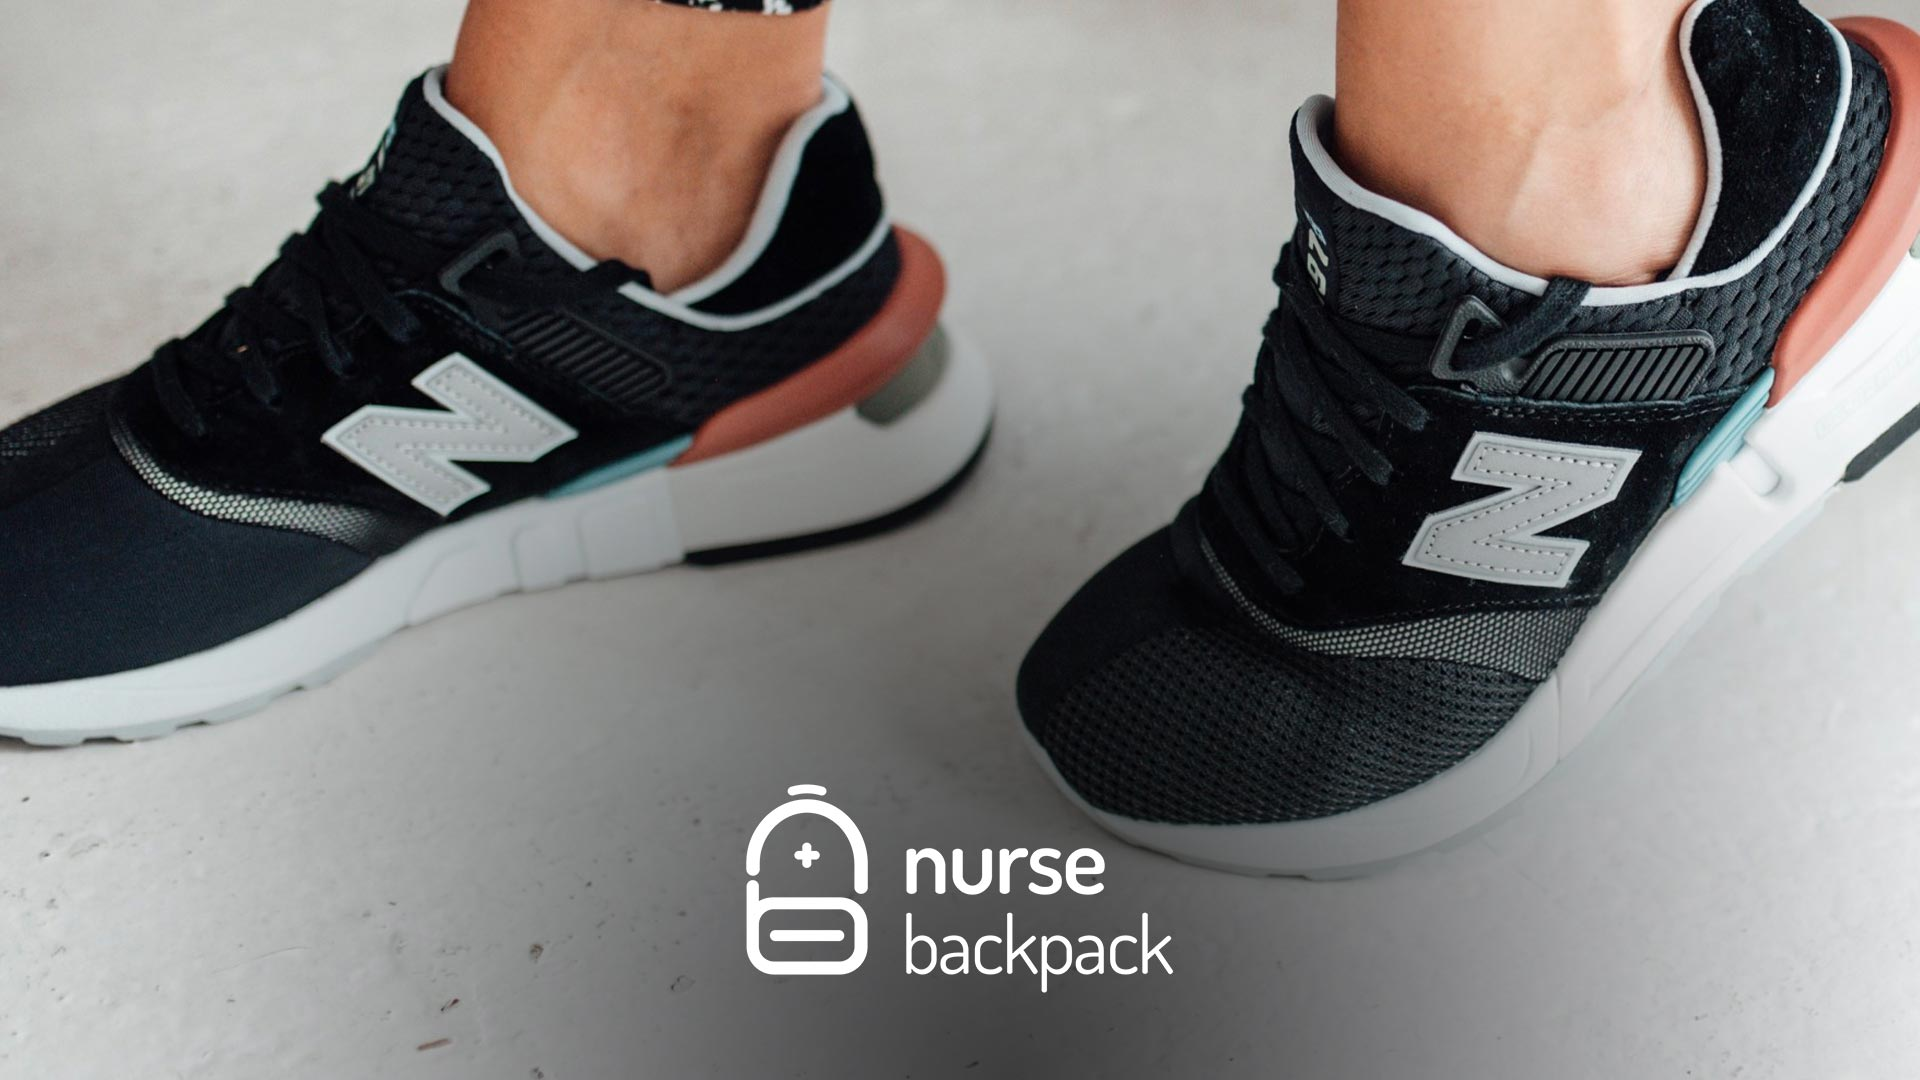 best shoes for working nurse professional